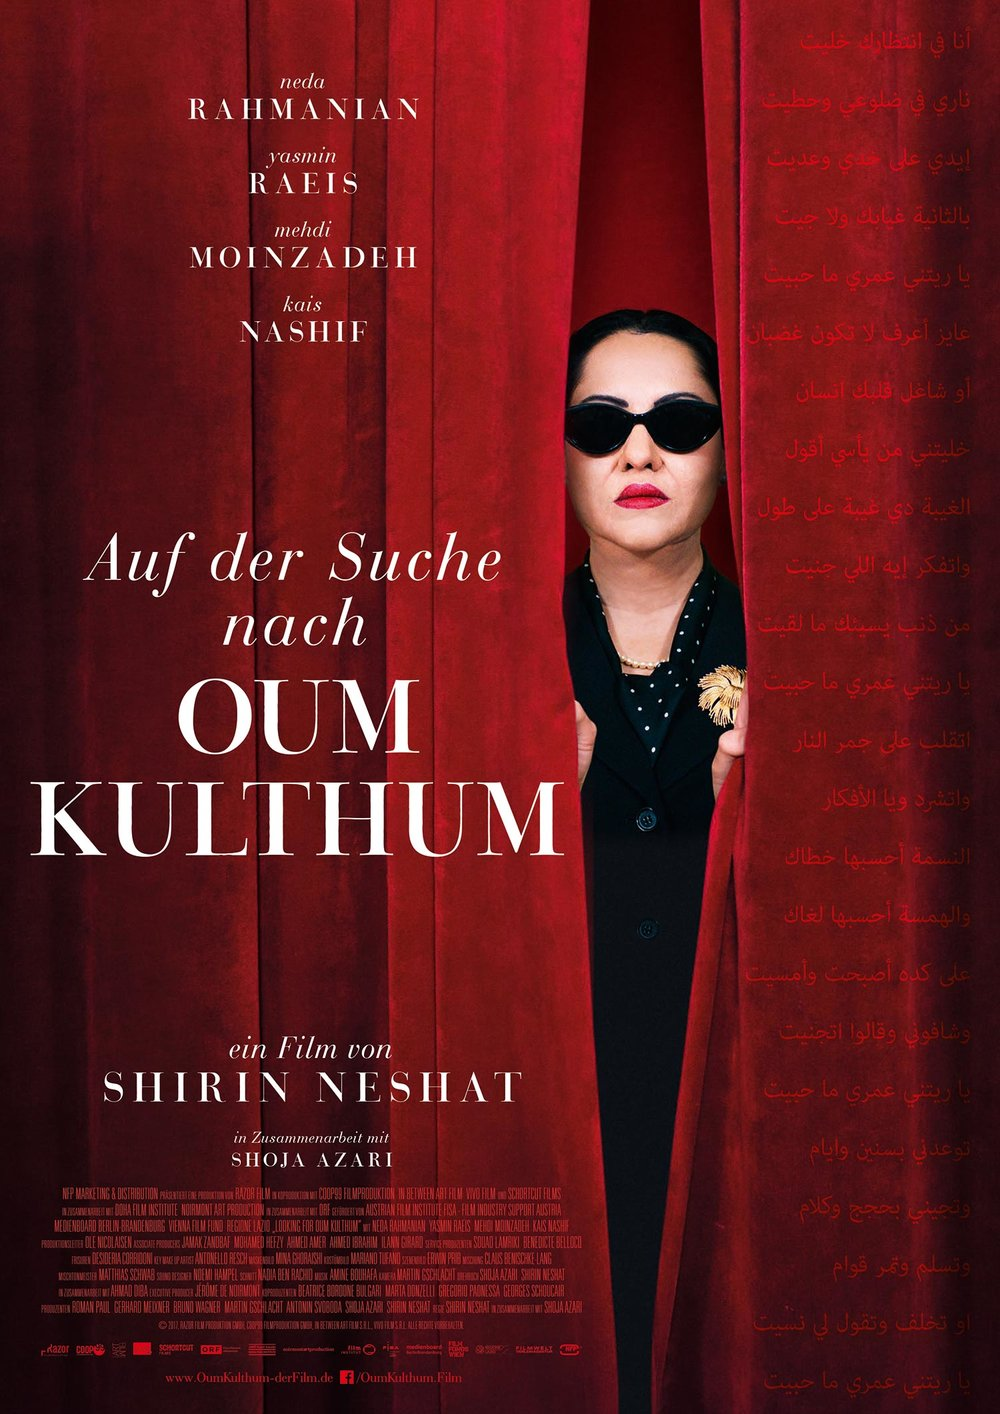 "NFP*<a href=""/auf-der-suche-nach-oum-kulthum"">→</a><strong>Adaption</strong>"